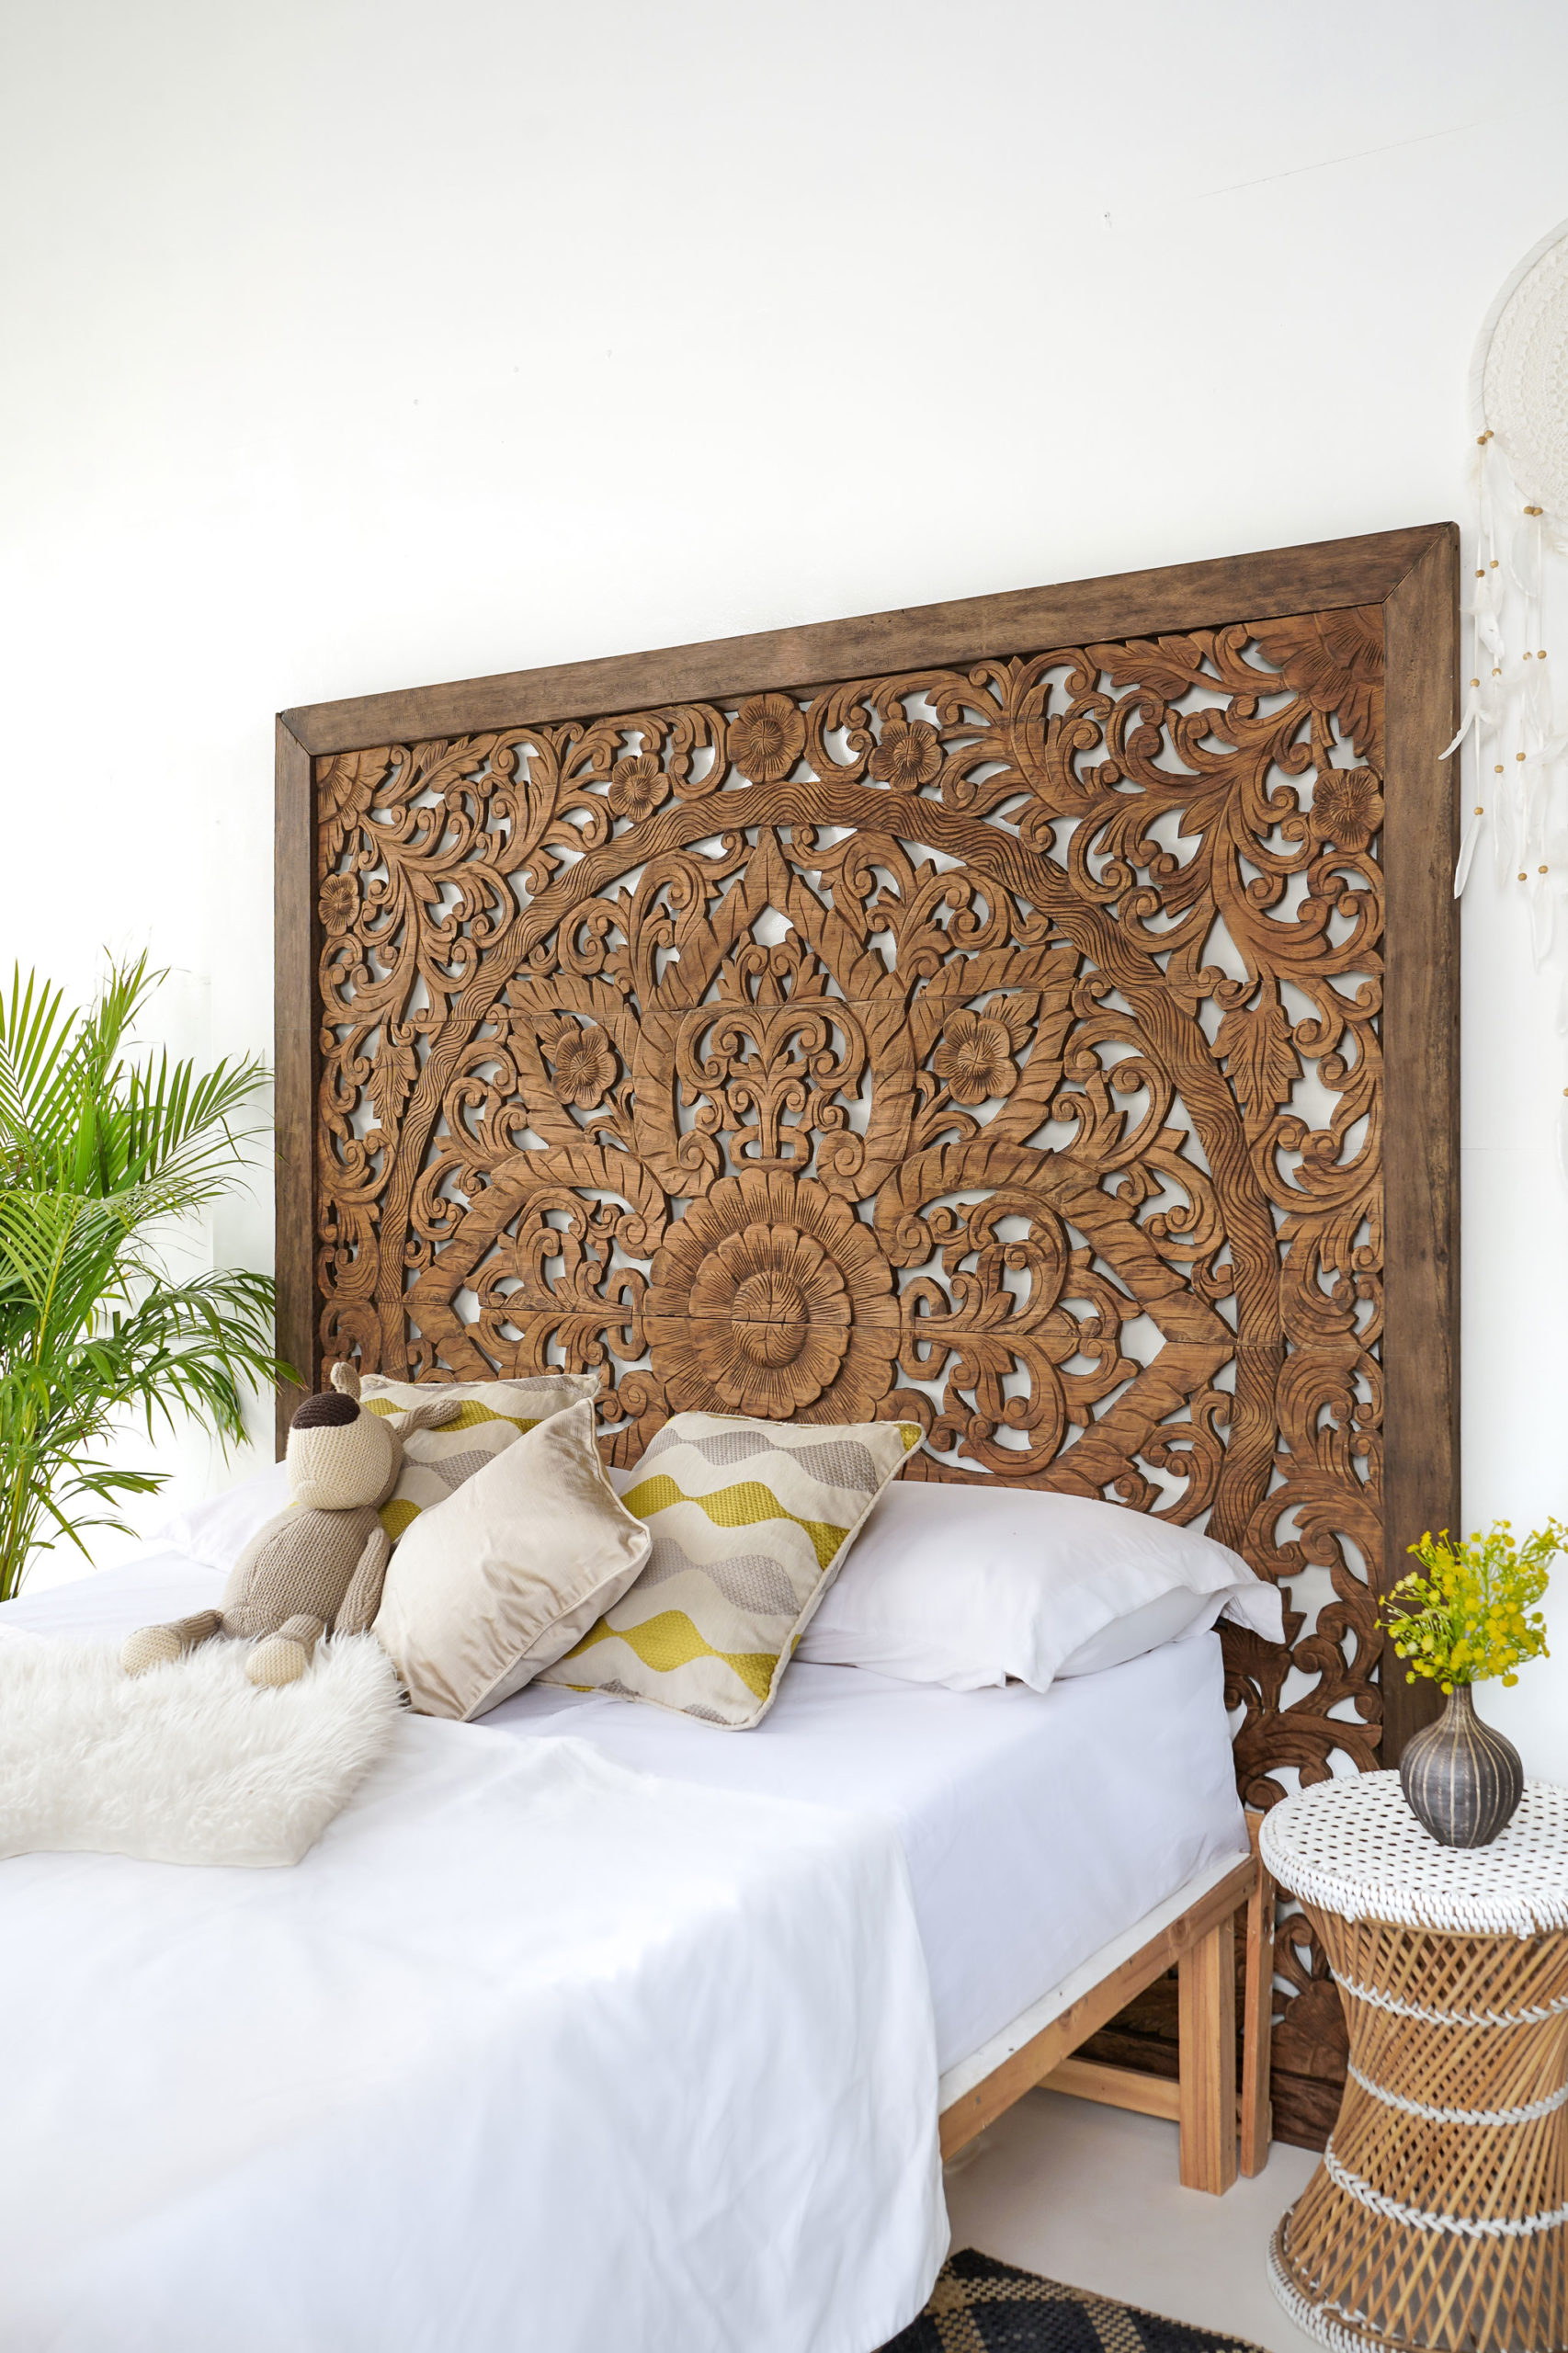 Super King Sized Carved Headboard Cottage Decor Siam Sawadee